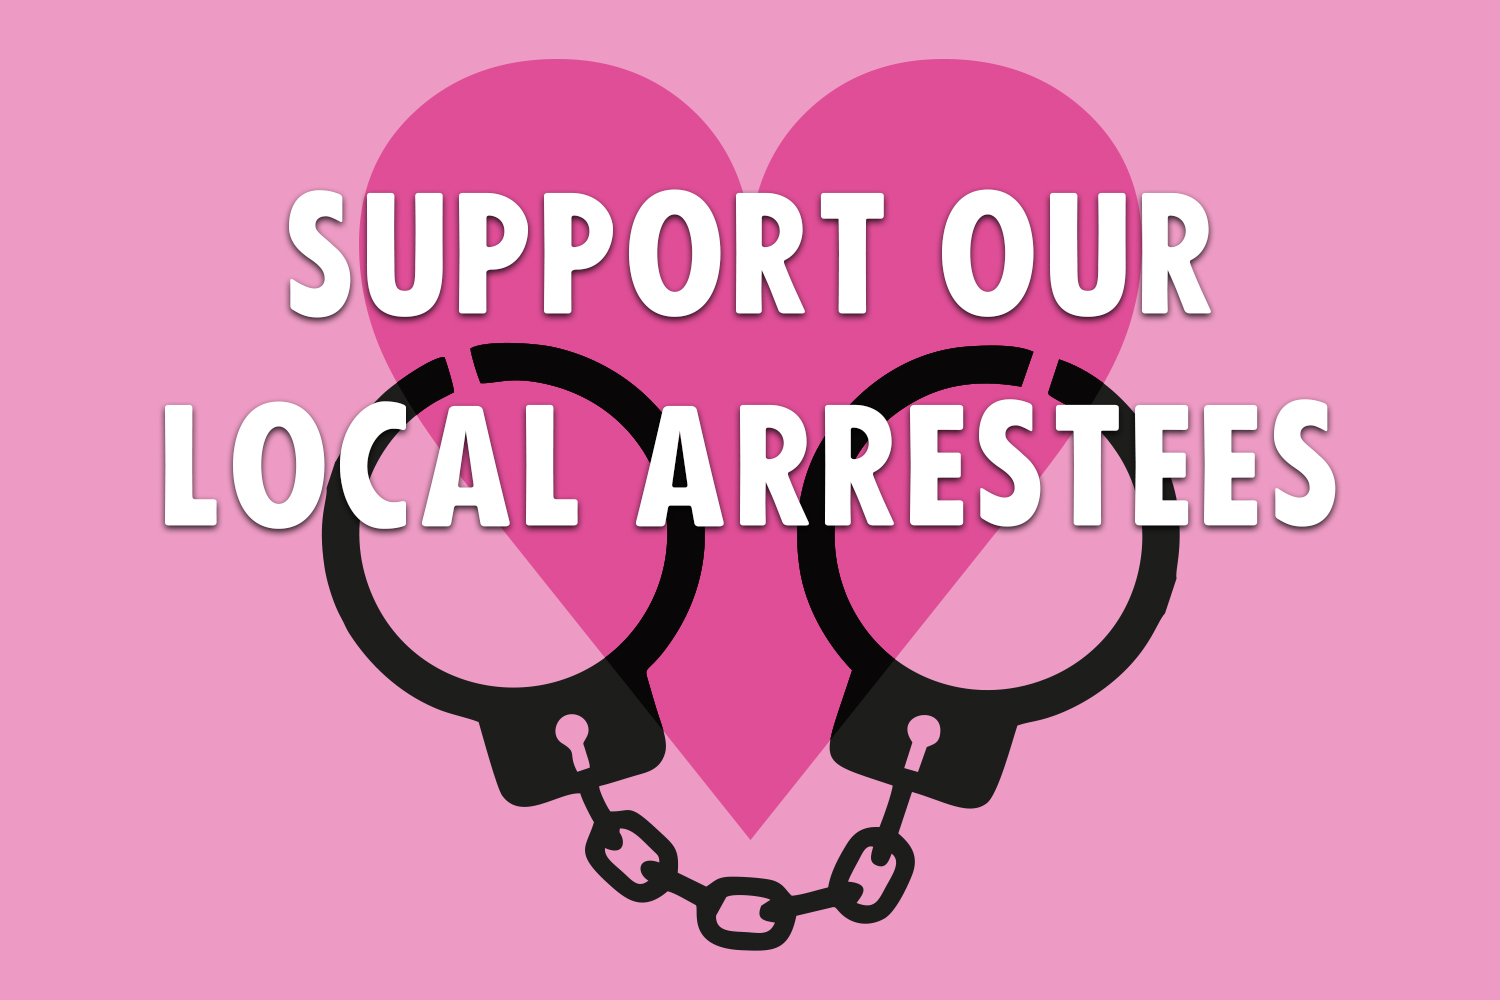 Support our local arrestees